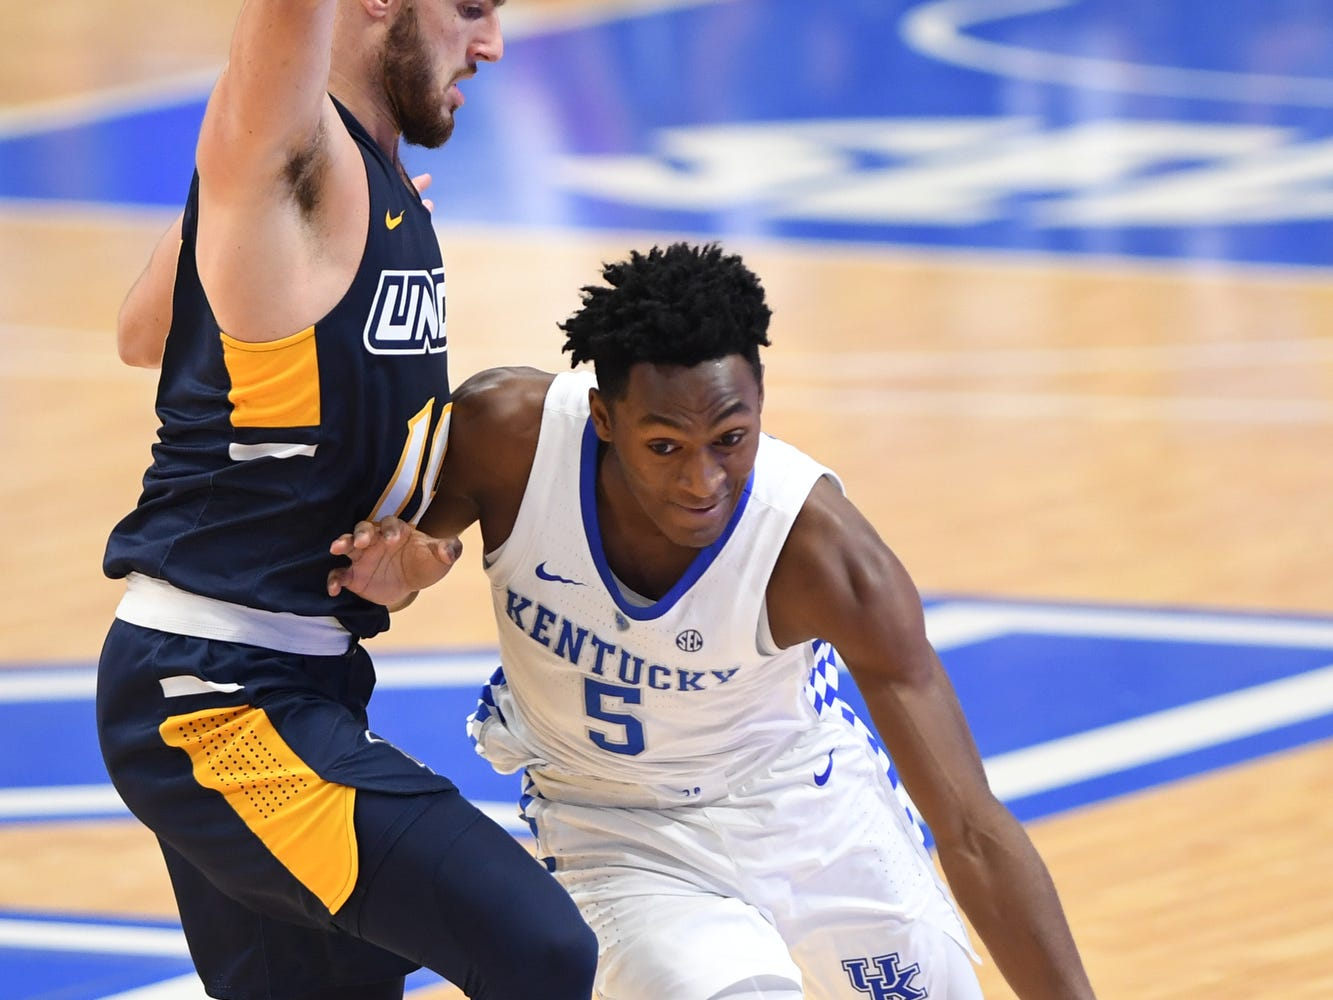 UK G Immanuel Quickley brings the ball up court during the University of Kentucky men's basketball game against UNC Greensboro at Rupp Arena in Lexington, Kentucky on Saturday, December 1, 2018.